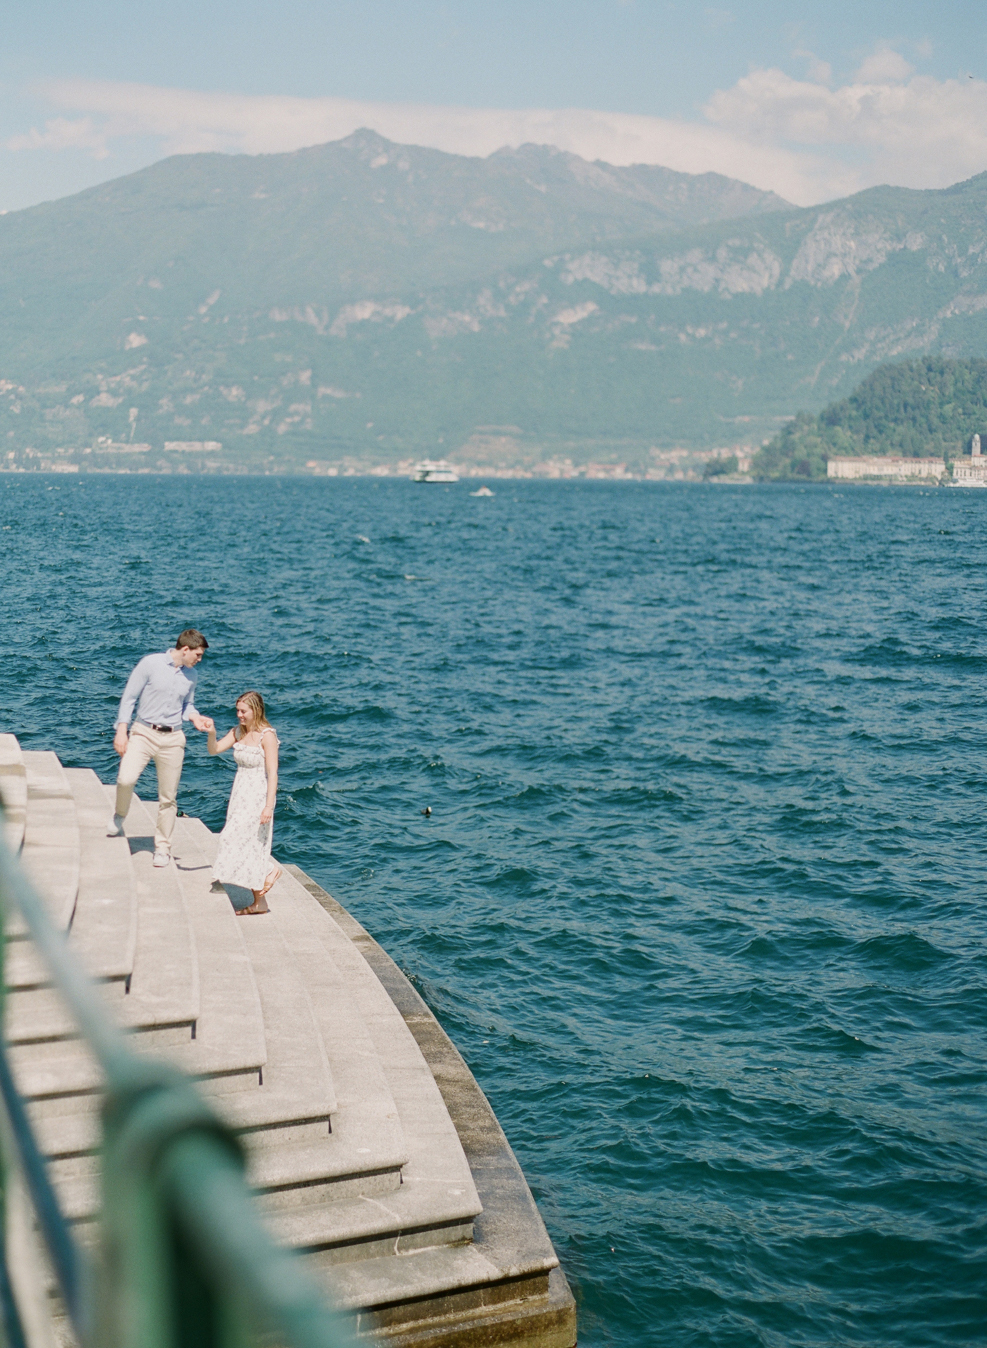 lake como film wedding photographer italy wedding photographer nikol bodnarova photography 74.JPG